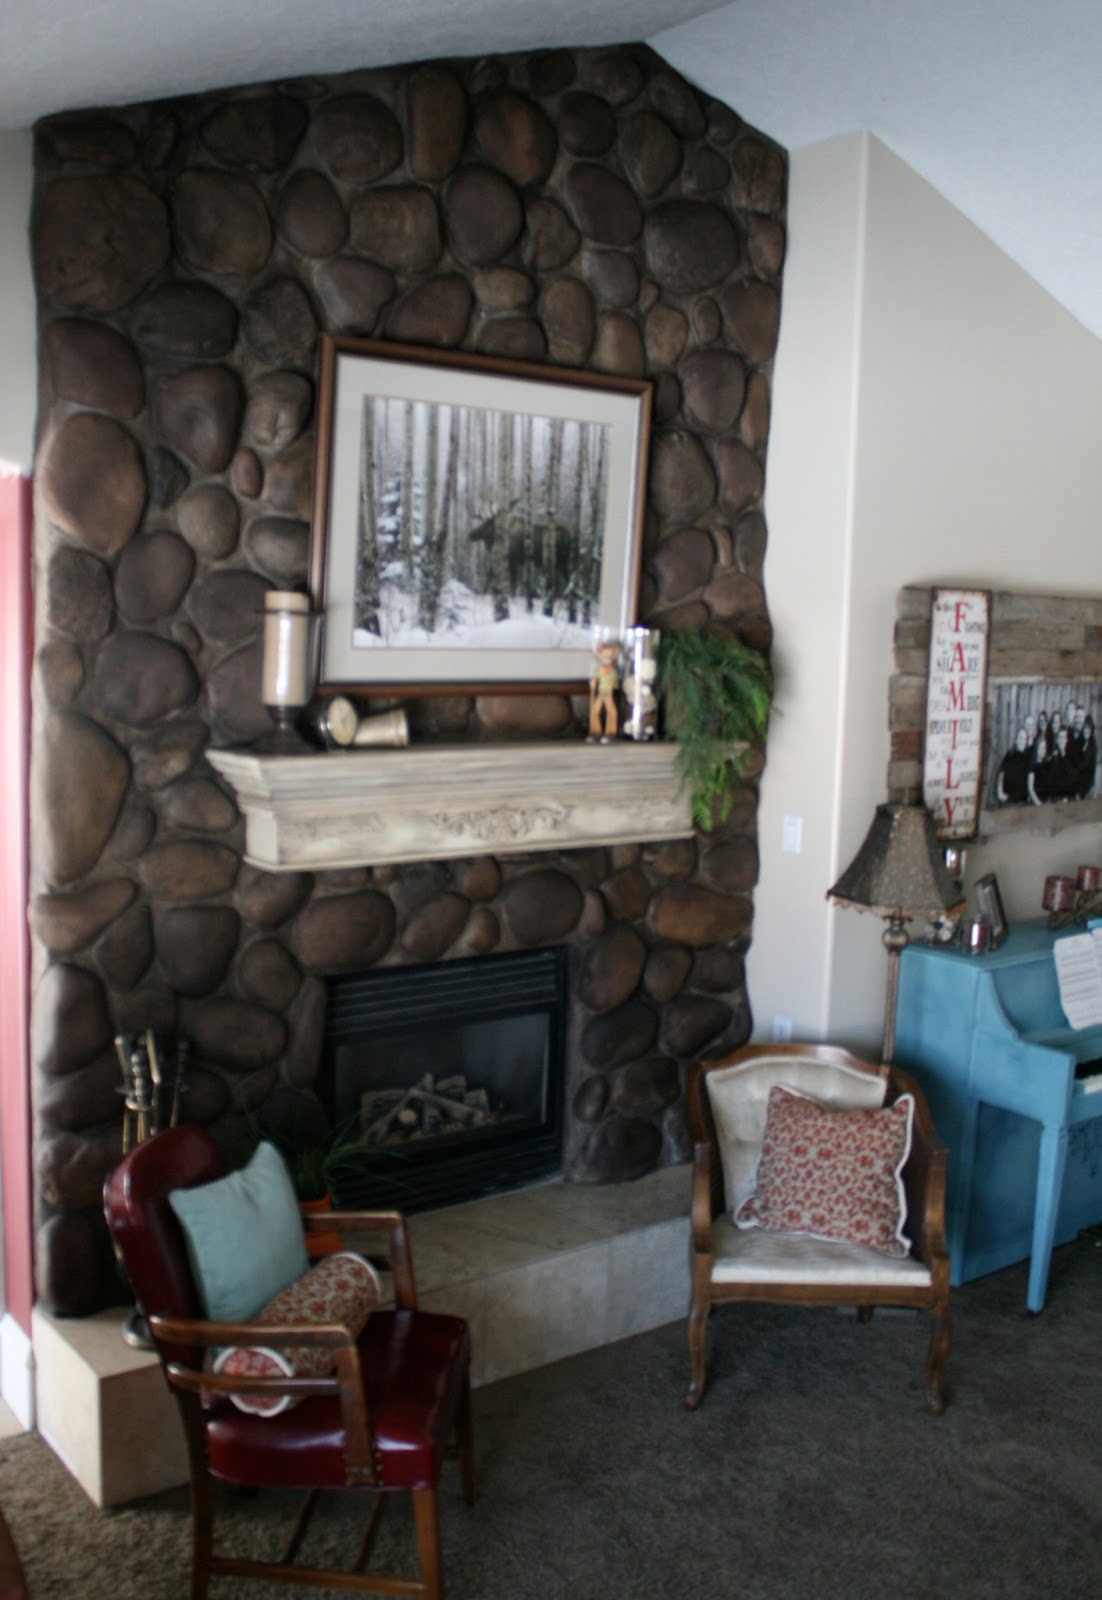 River rock fireplace pictures - River Rock Fireplace Pictures 59